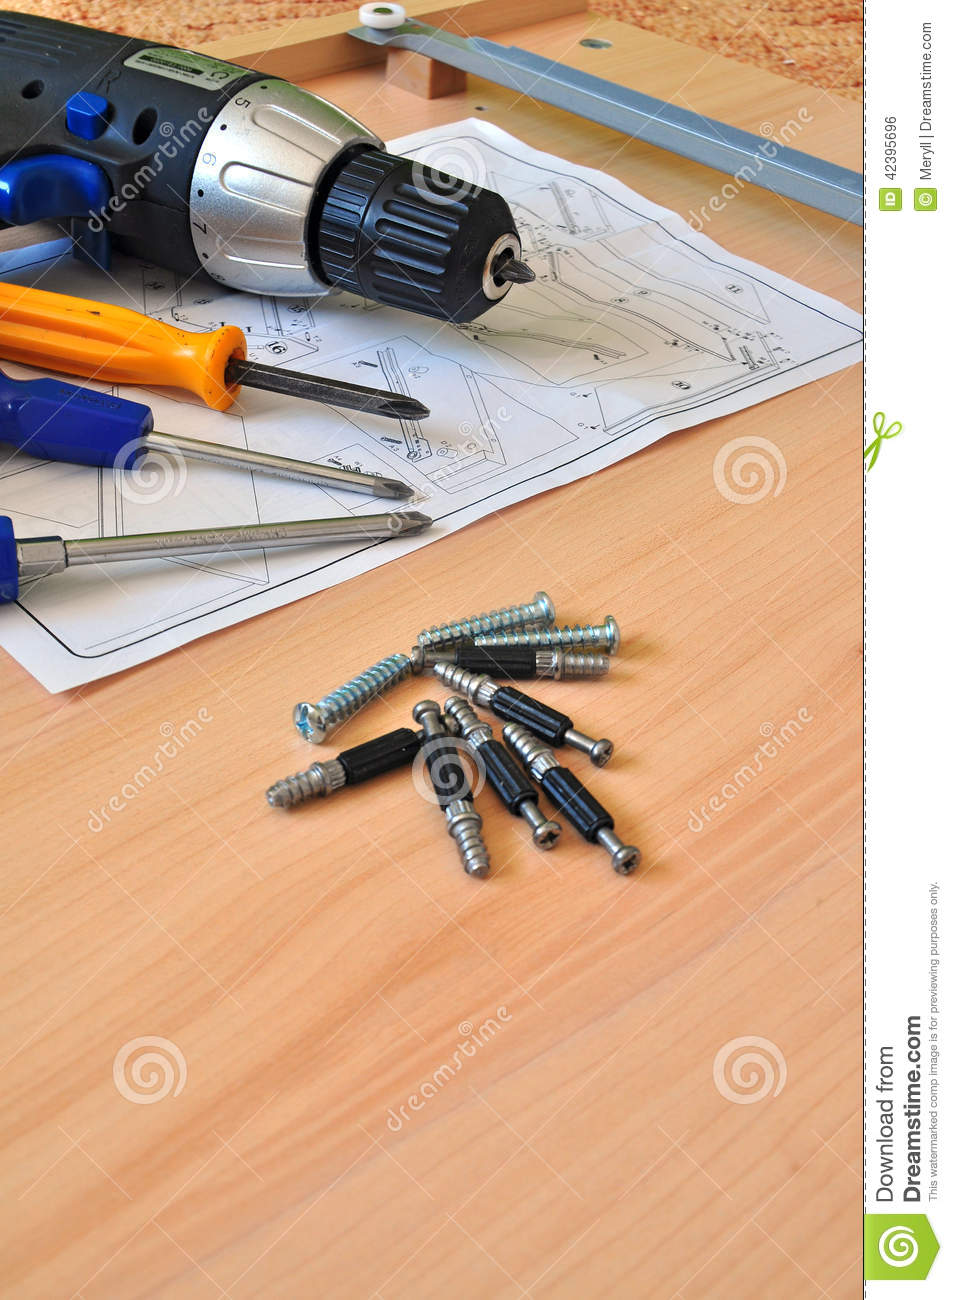 Assemblingembly Furniture Montage. Montageembly Tools Stock Photo Image  42395696